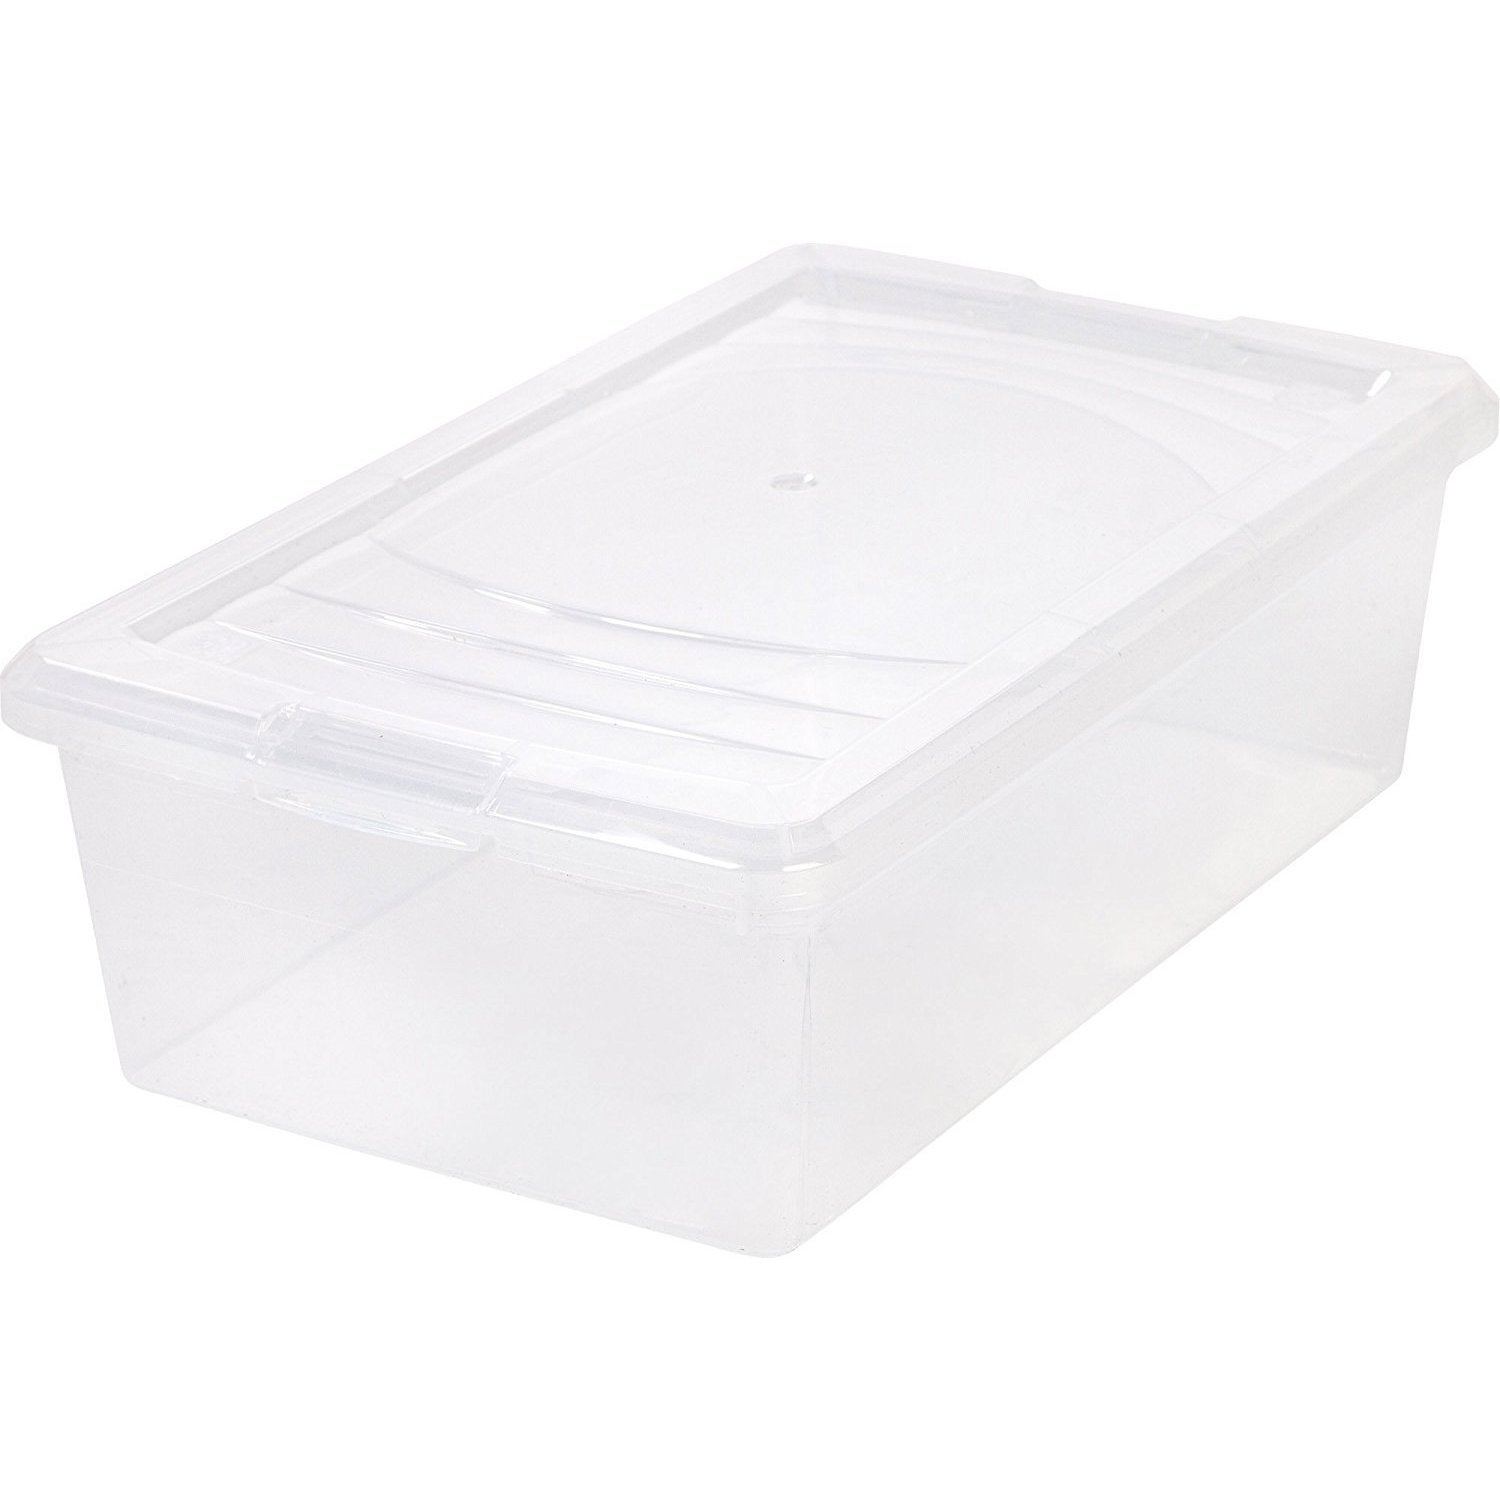 USA Iris Clear Modular 6-quart Shoe Box (Clear) (Plastic)